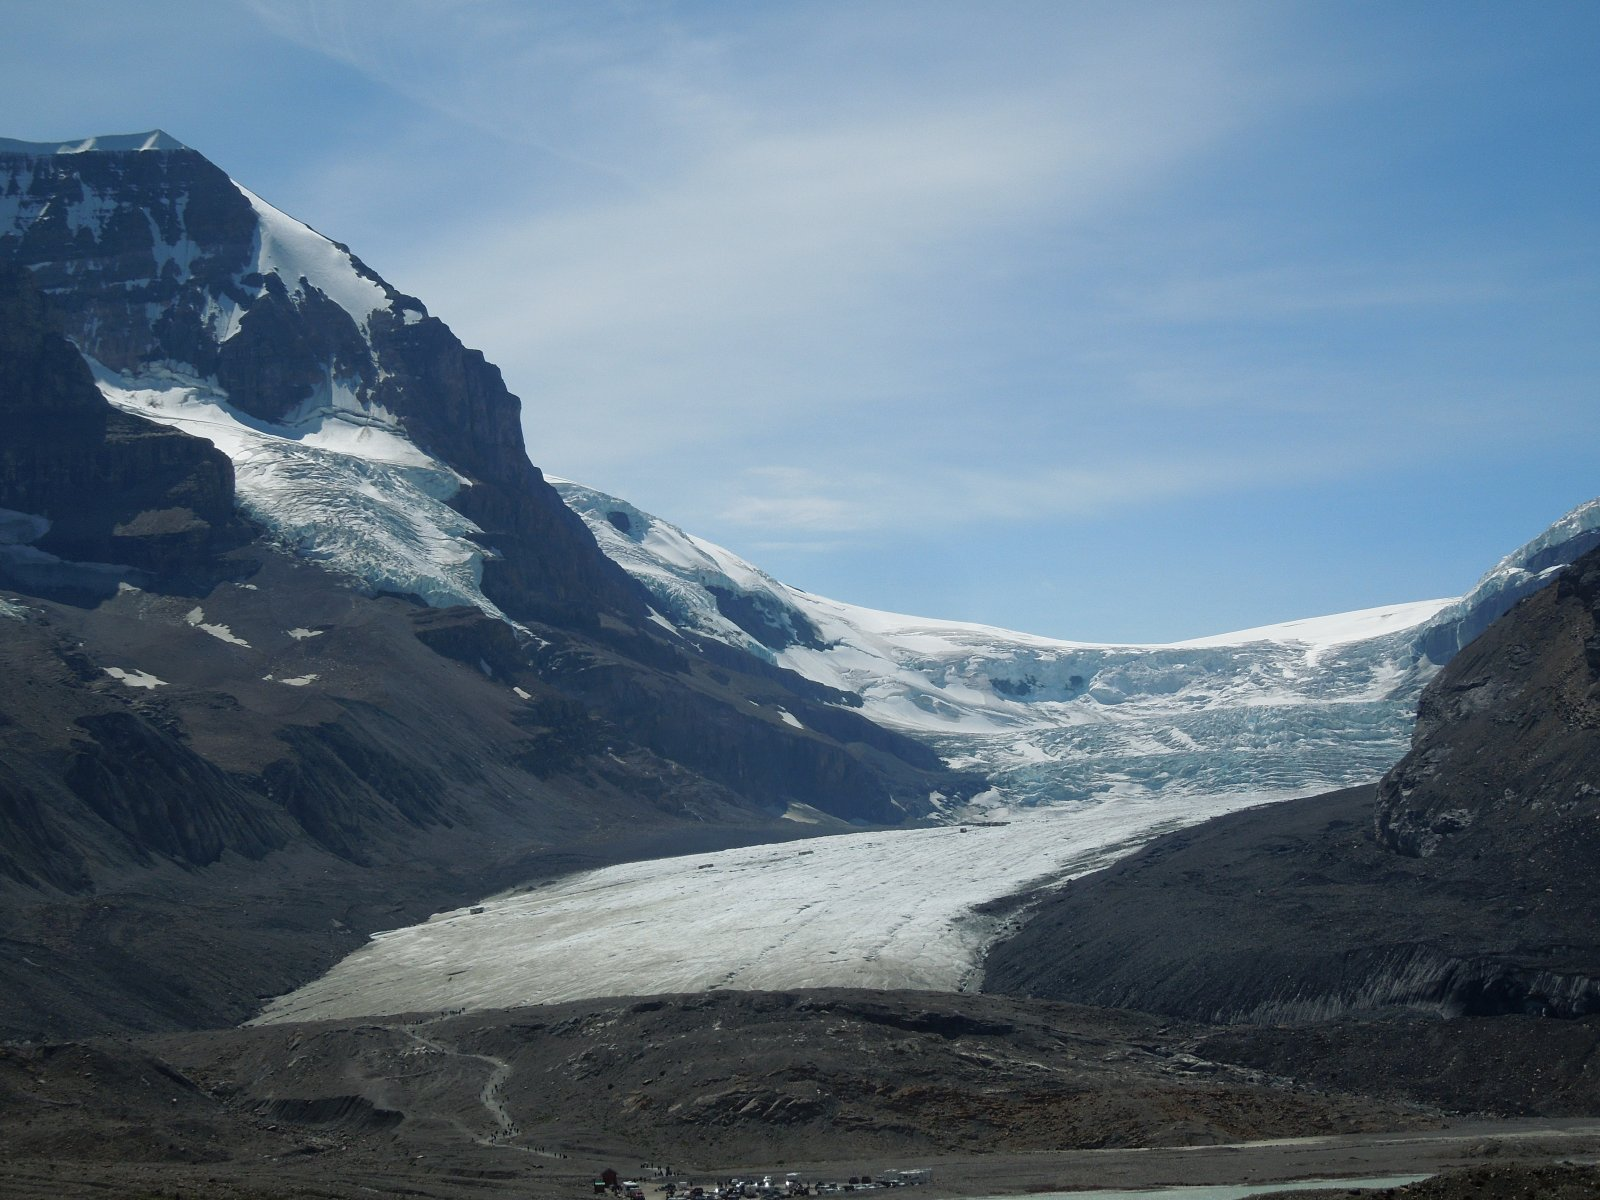 Click image for larger version  Name:Dawson Creek to Icefield Parkway to Cochrane 282.jpg Views:40 Size:285.5 KB ID:222524